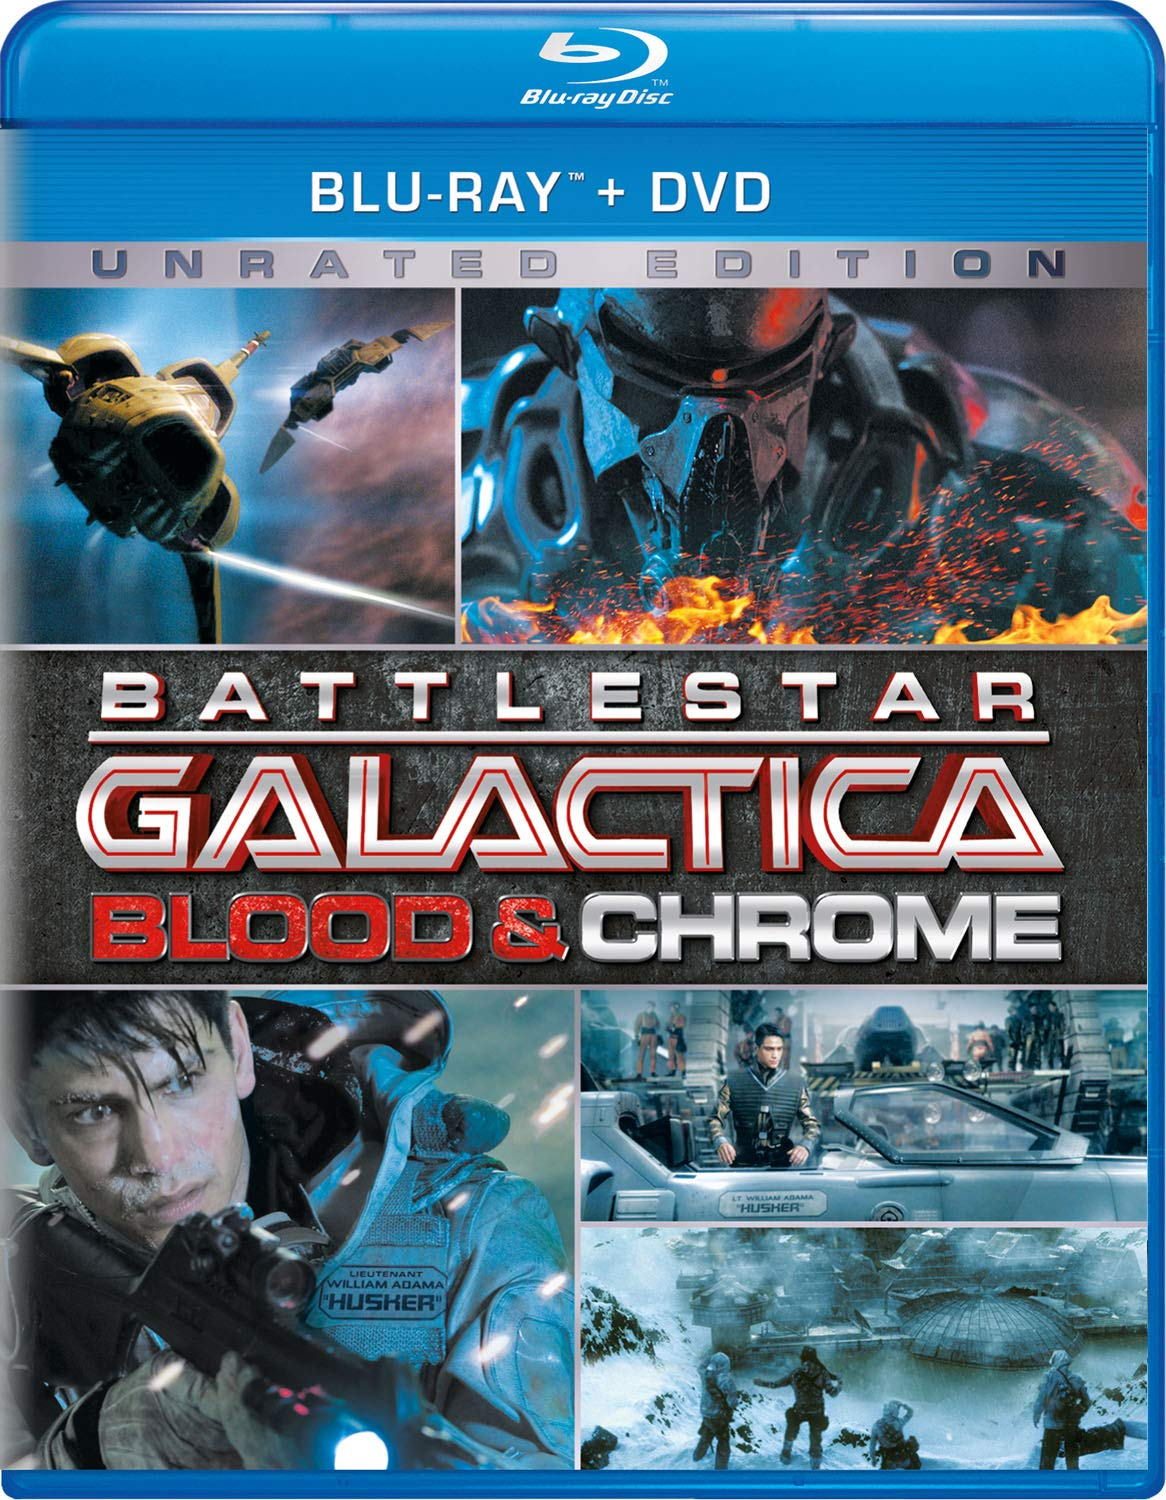 Blu-ray : Battlestar Galactica: Blood & Chrome (2 Pack, Unrated Version)